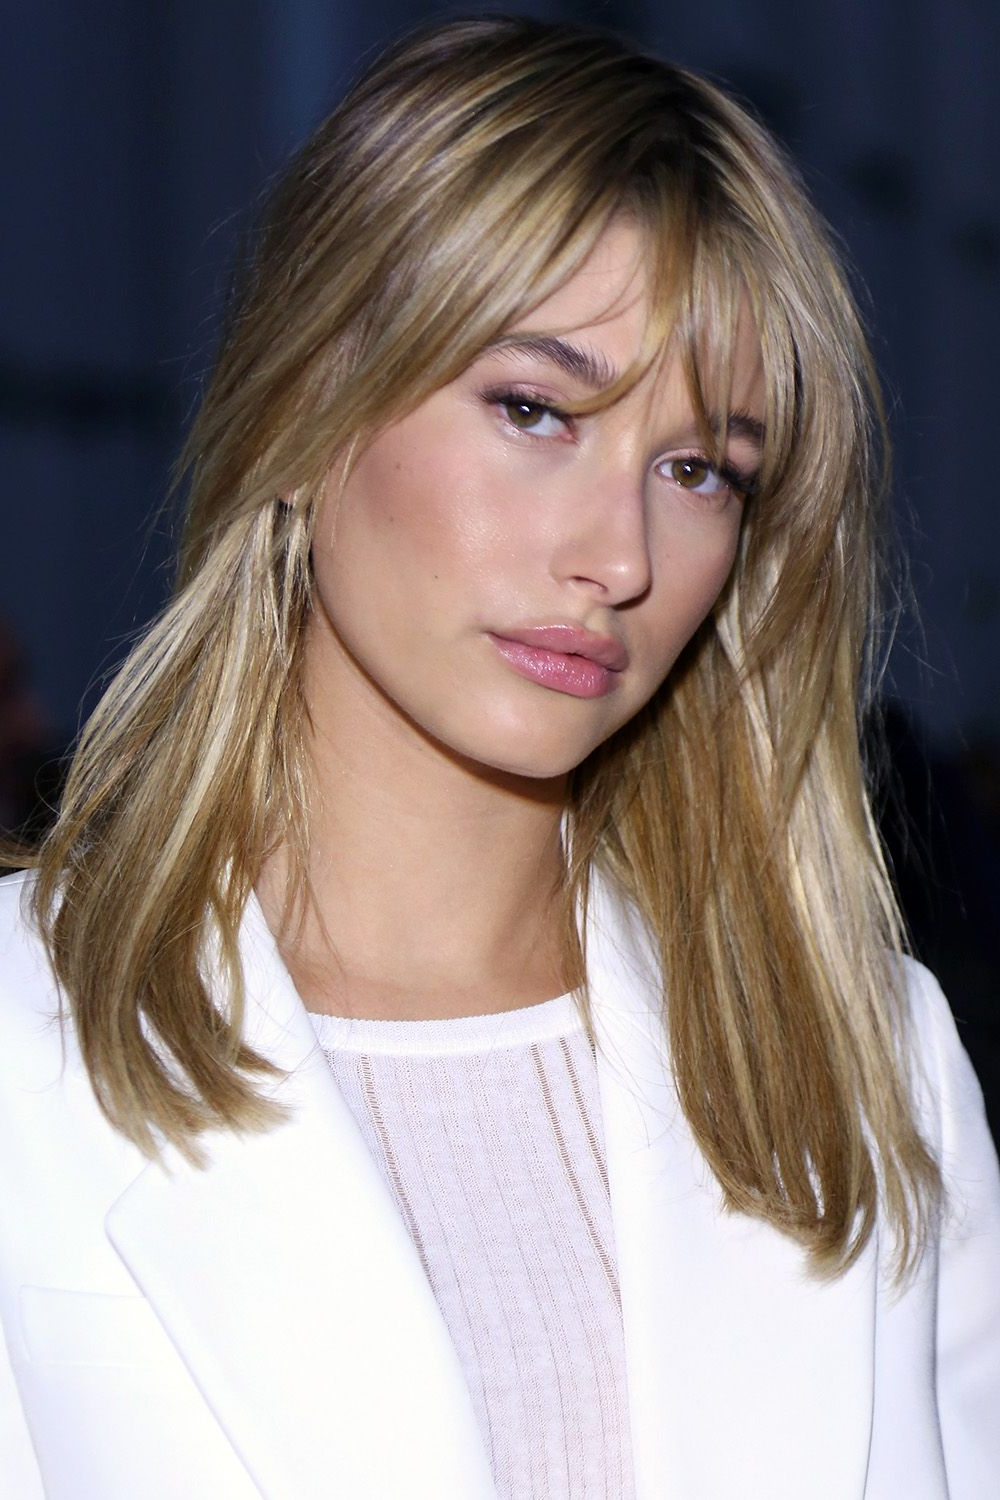 40 Best Medium Hairstyles – Celebrities With Shoulder Length Haircuts Throughout Well Known Medium Hairstyles With A Fringe (View 11 of 20)